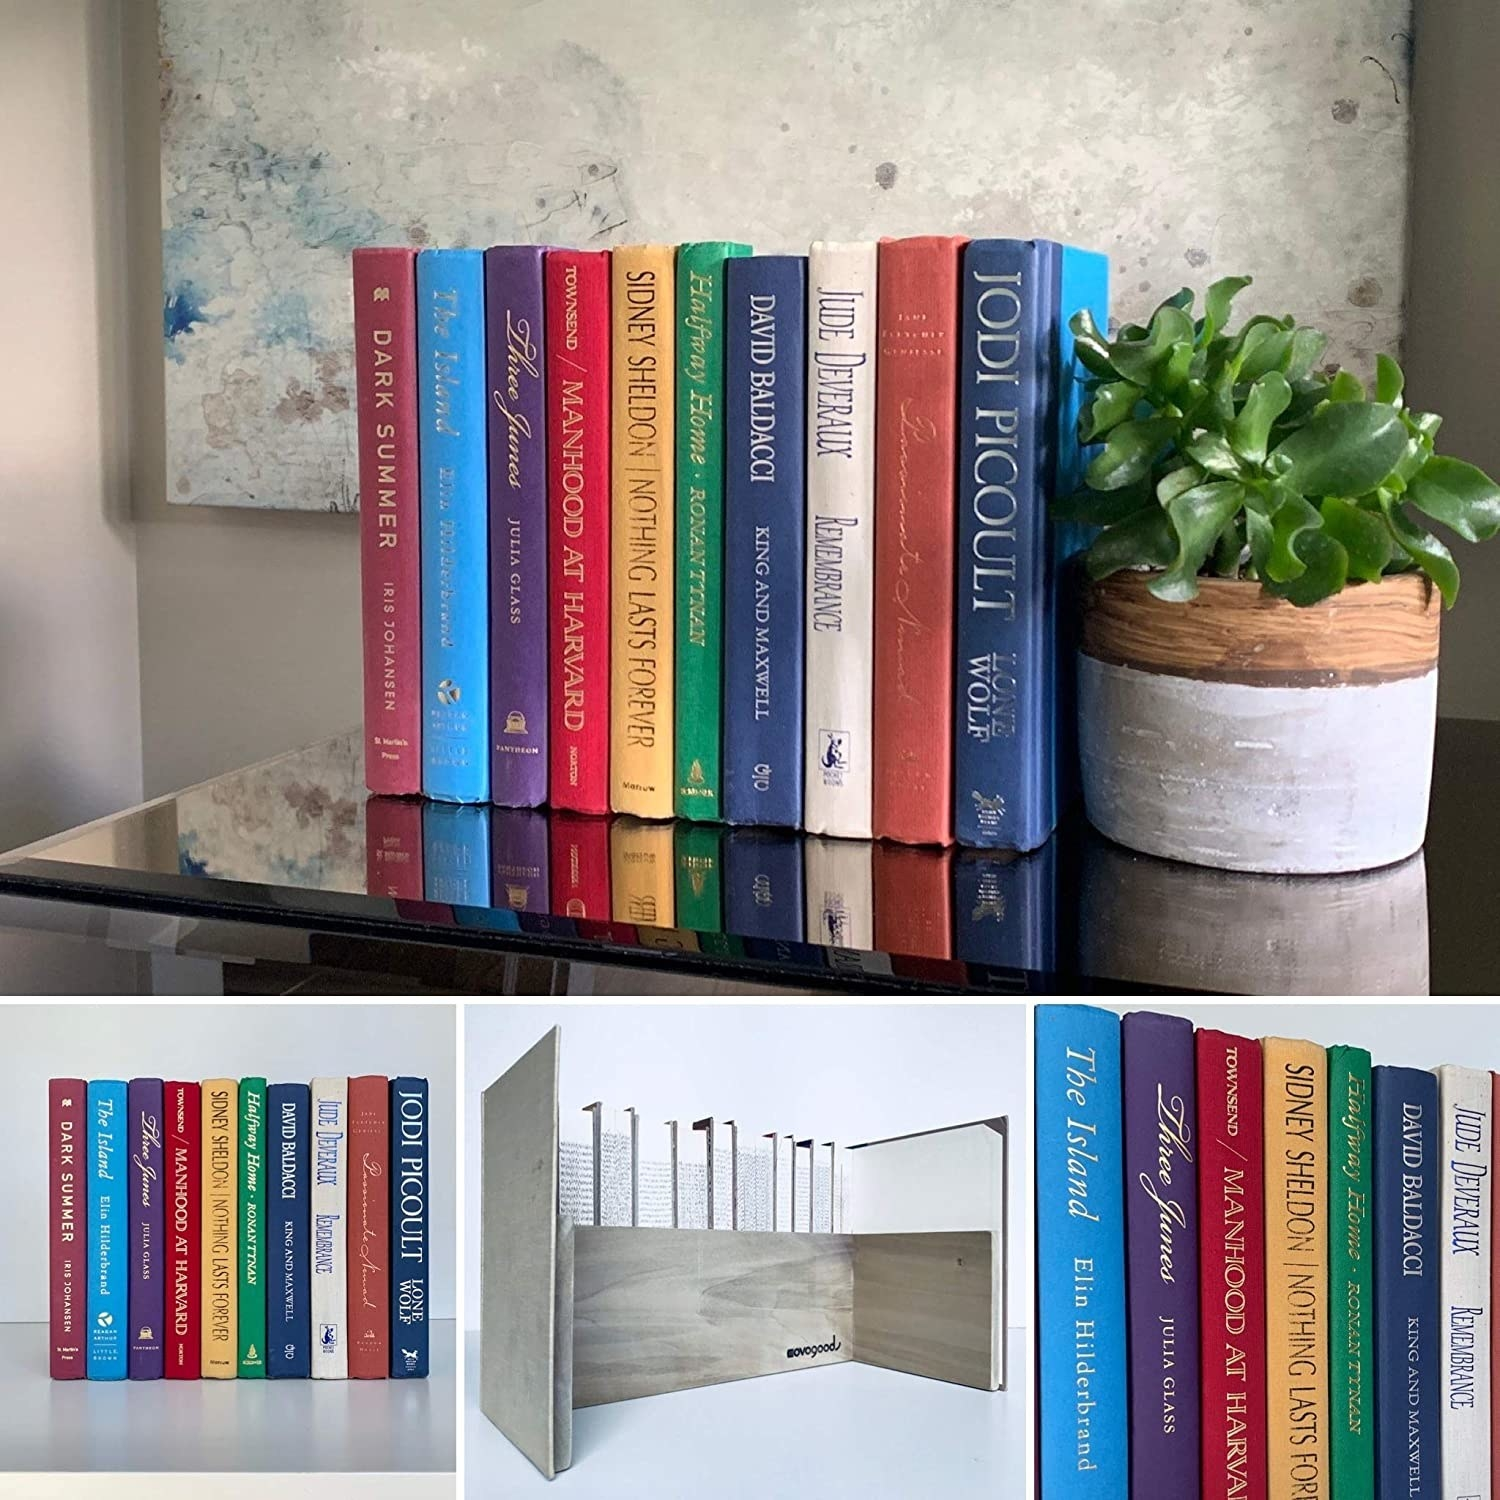 the box appears as a stack of books on a counter with an image of the secret storage space behind the books